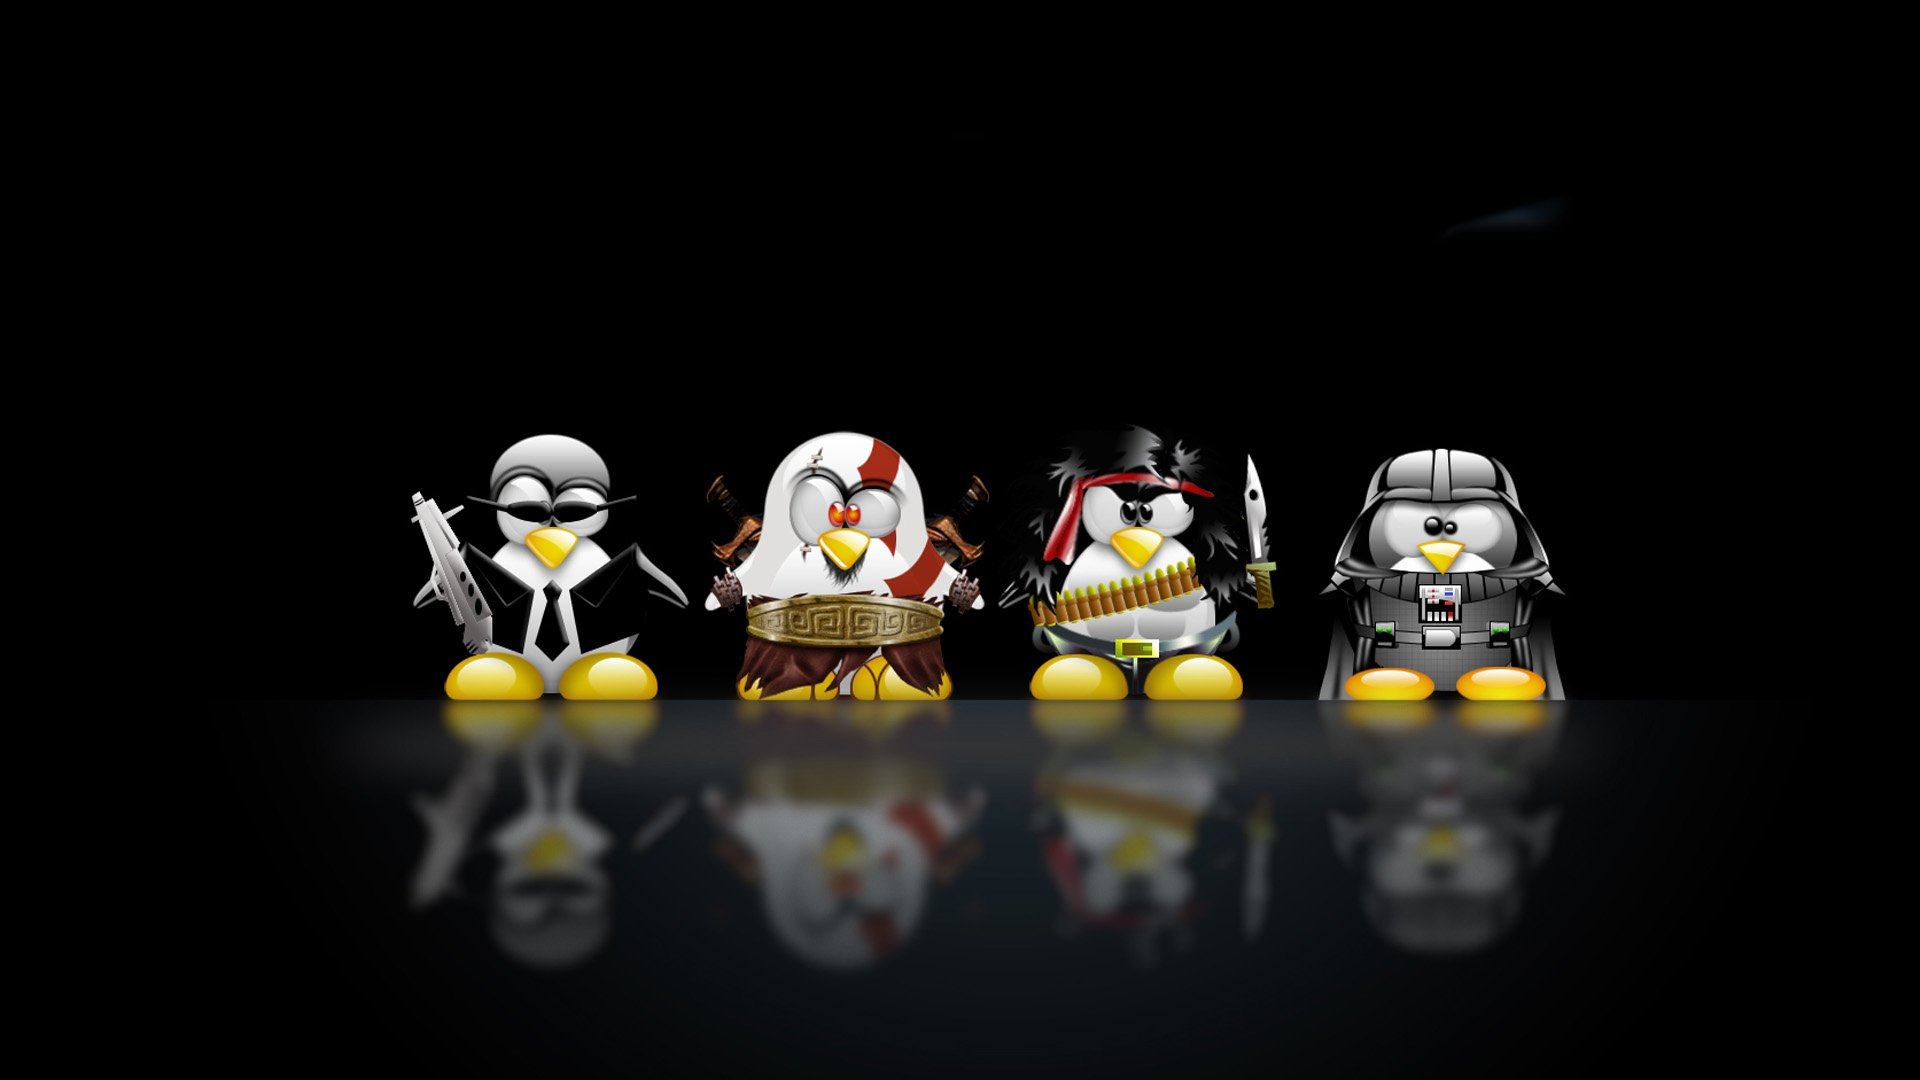 Best Linux Wallpaper   All Wallpapers New 1920x1080